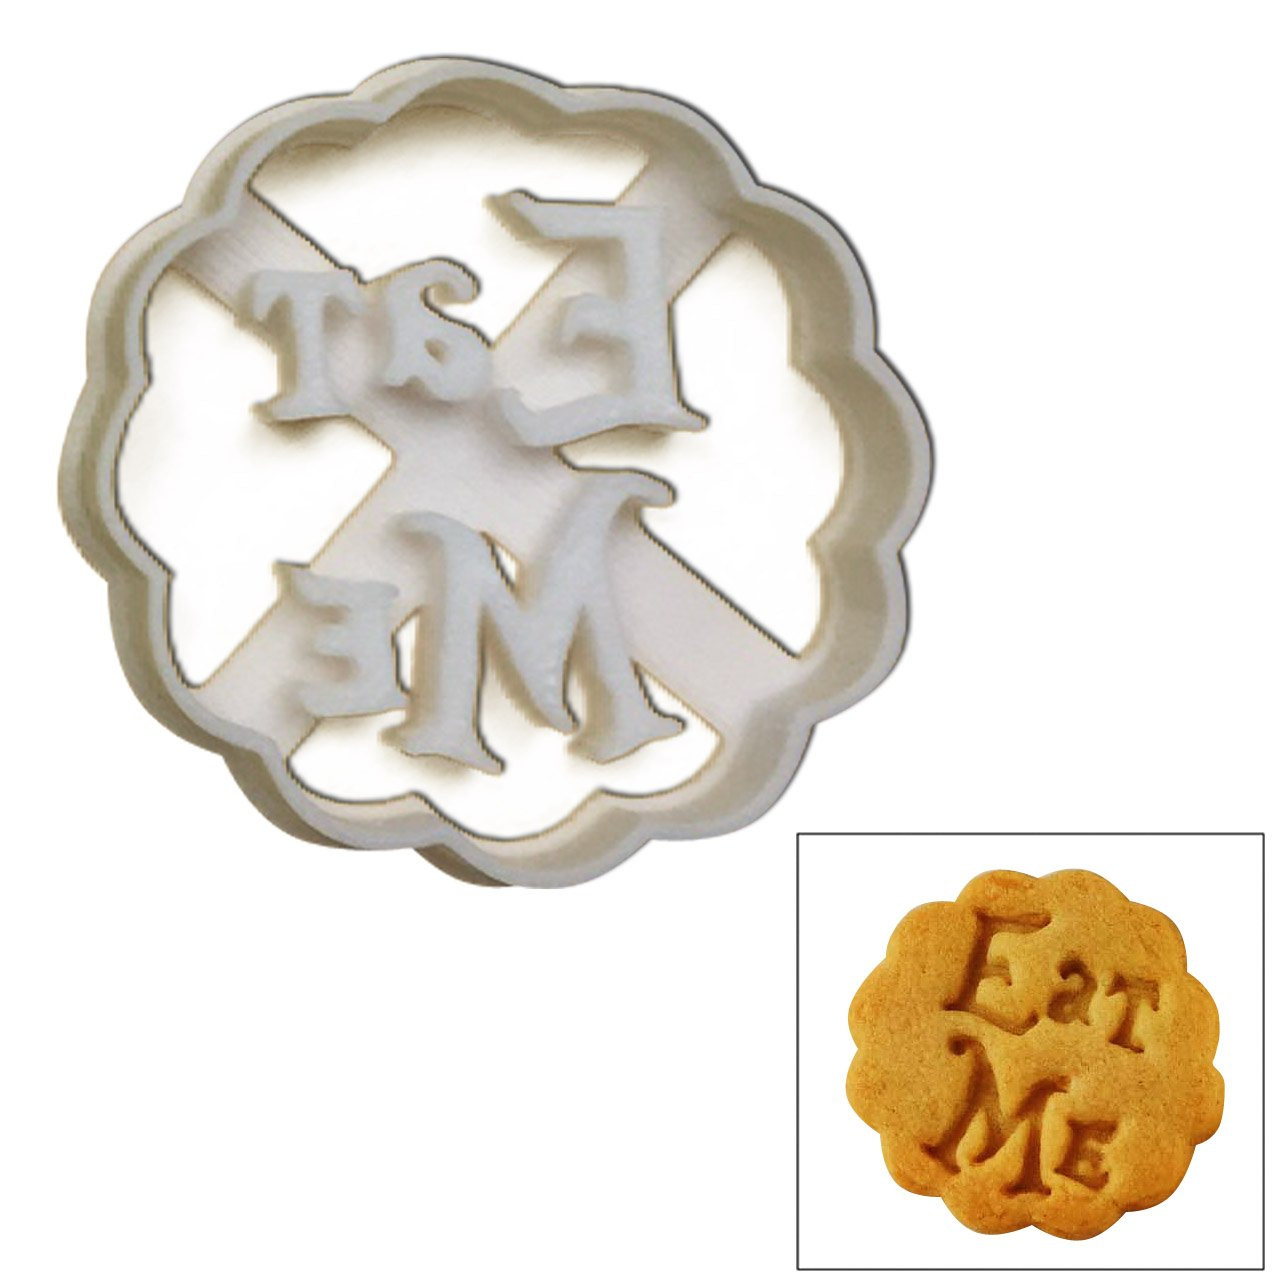 "Eat Me Cookie Cutter, 1 pc, Inspired by""Alice's Adventures in Wonderland"" novel by Lewis Carroll, Great for mad tea party, event favors, gifts and cake decorations"